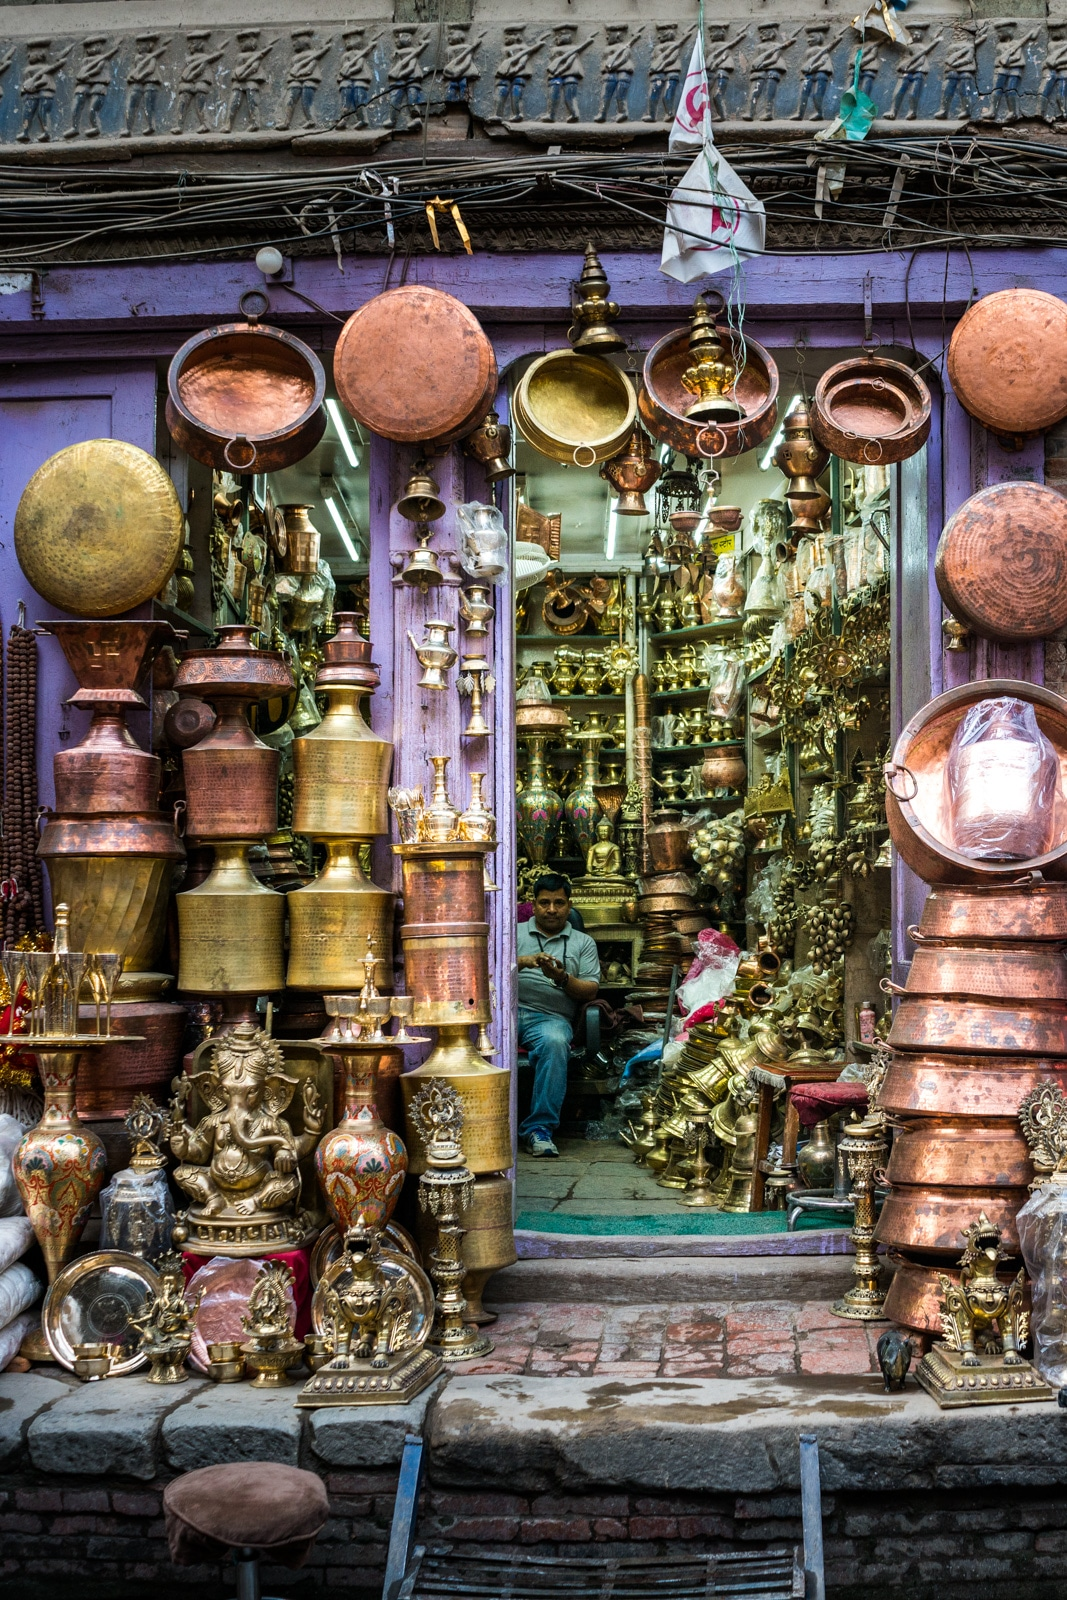 A store filled to the brim with brass and copper knick knacks in the New Market area of Kathmandu, Nepal.